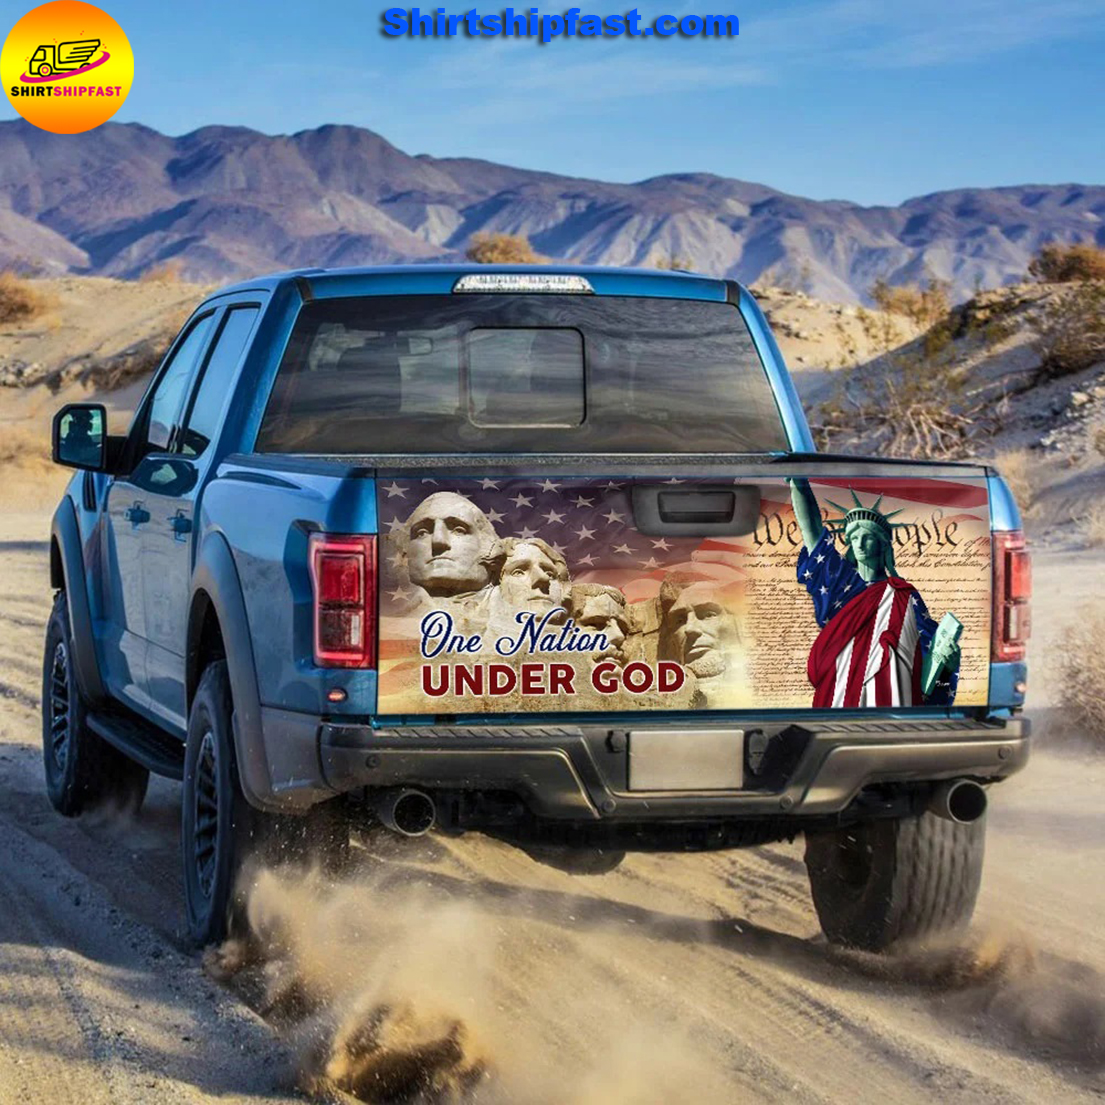 One nation under god American pride truck tailgate decal sticker wrap - Picture 1